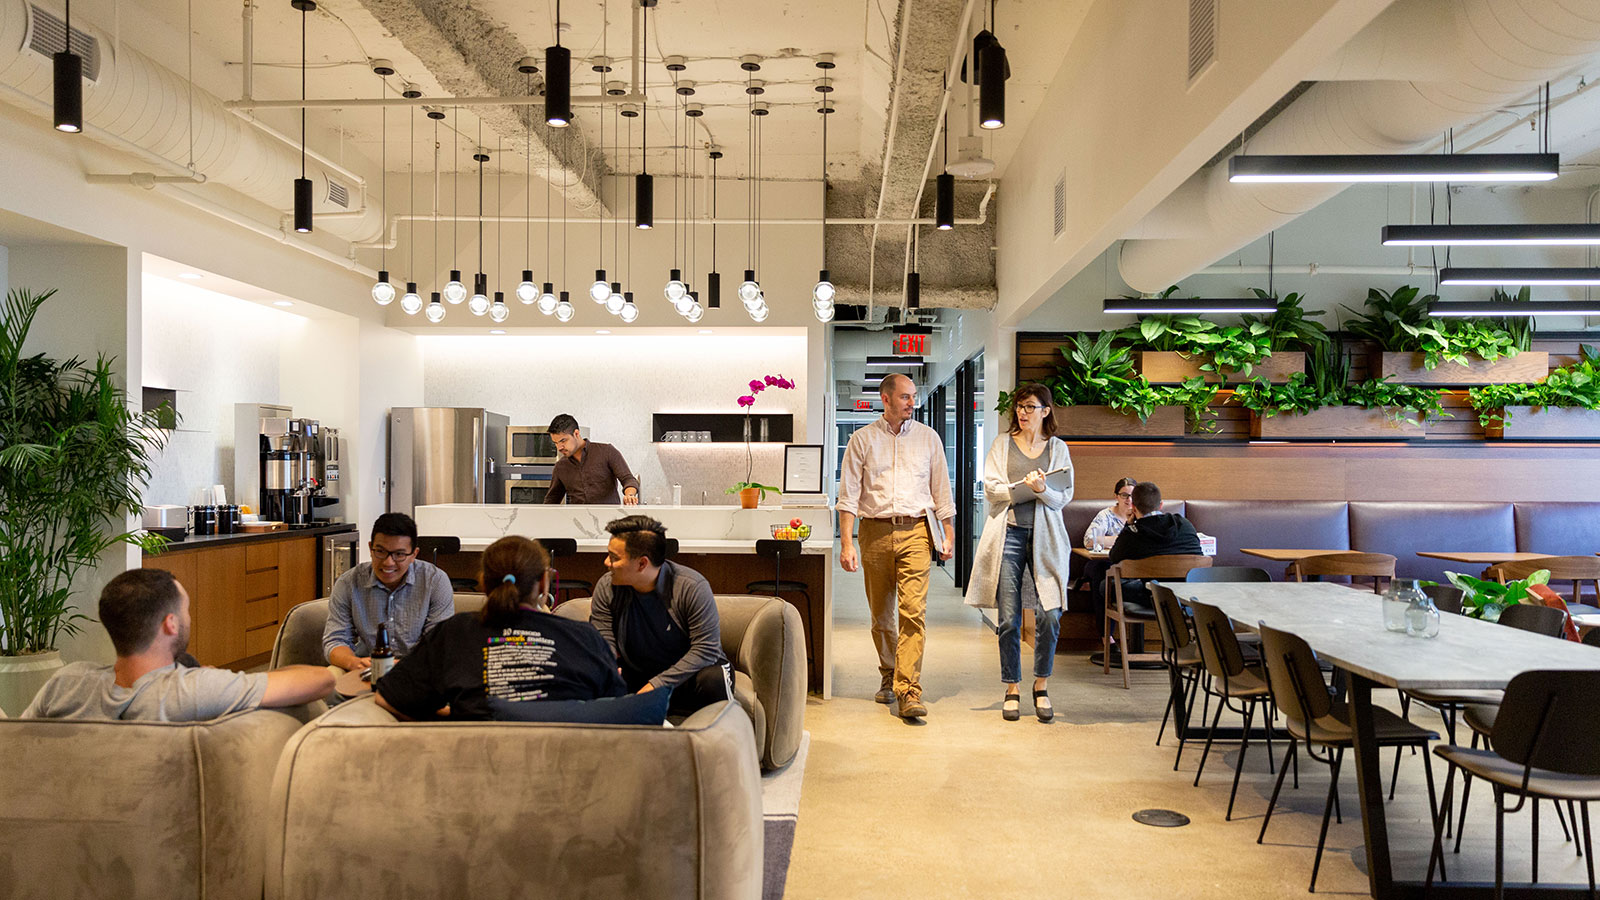 Top Reasons Why Coworking Spaces Work for You